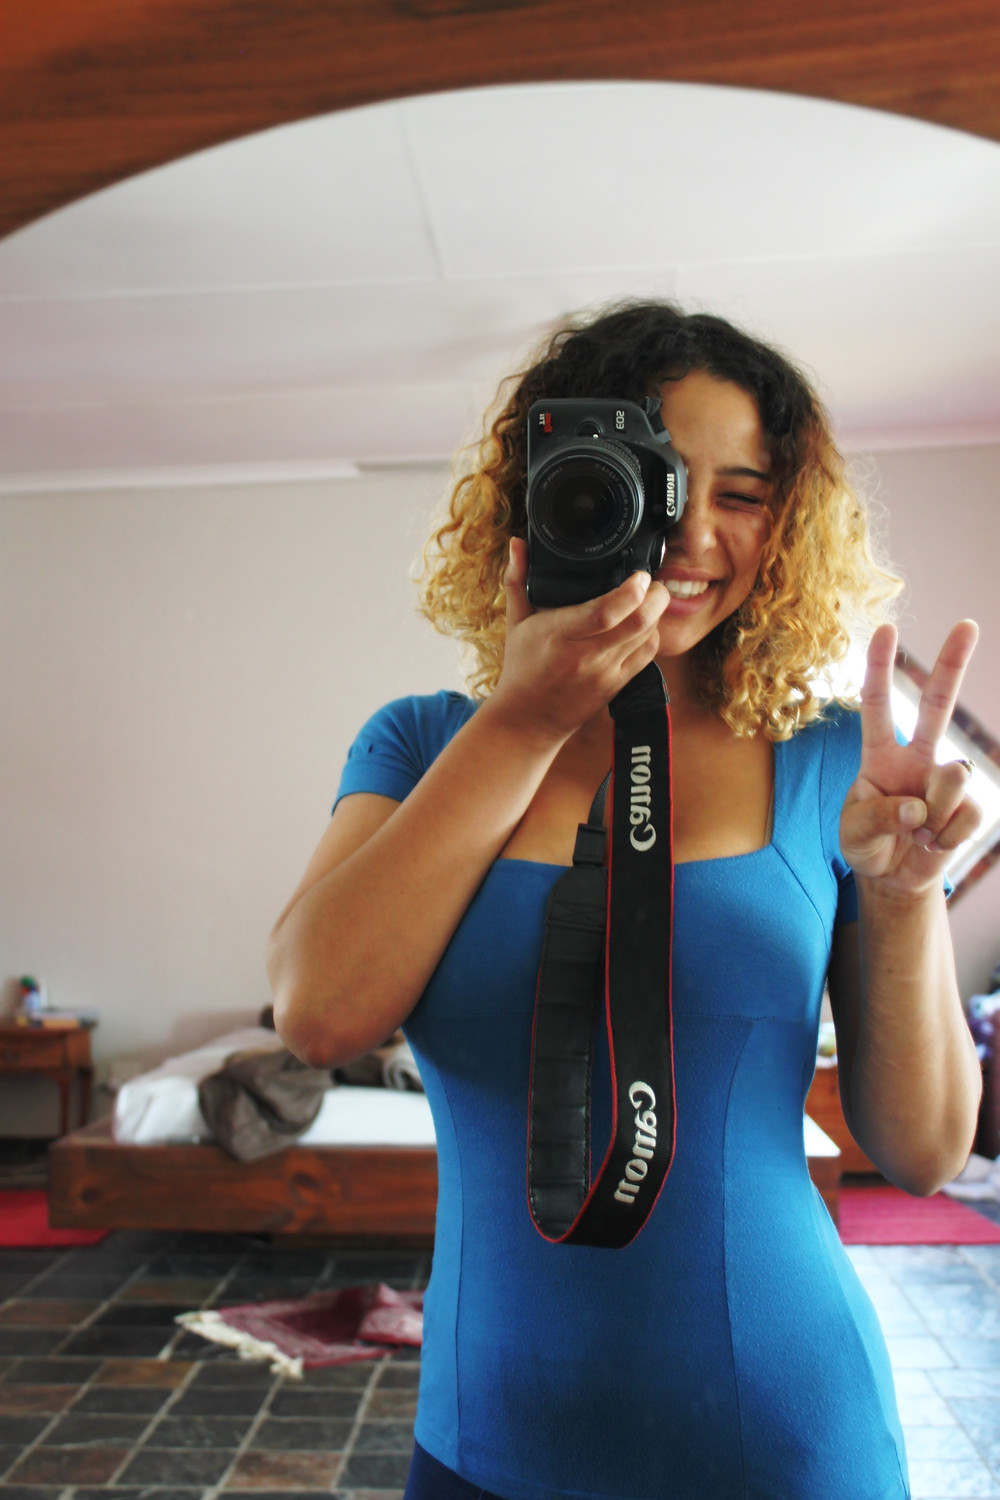 Me and my brand new camera